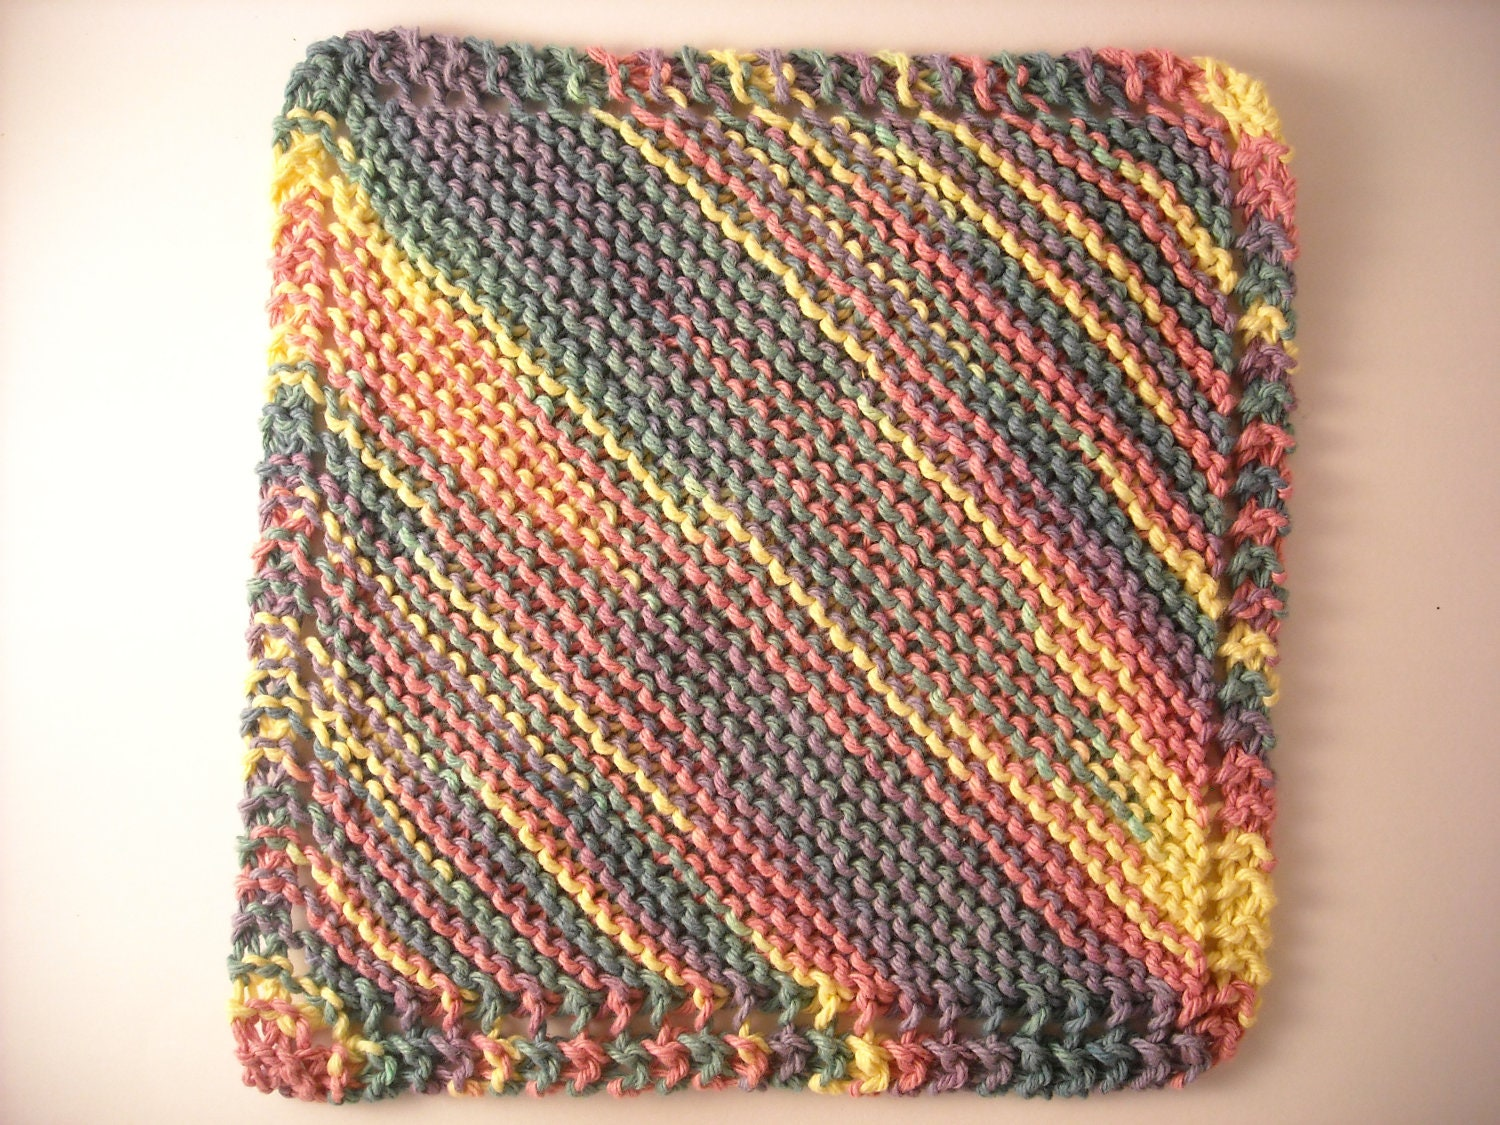 Knitted Dish Towel Pattern : Hand Knit Dish Cloth Mix-N-Match Cotton Large 9